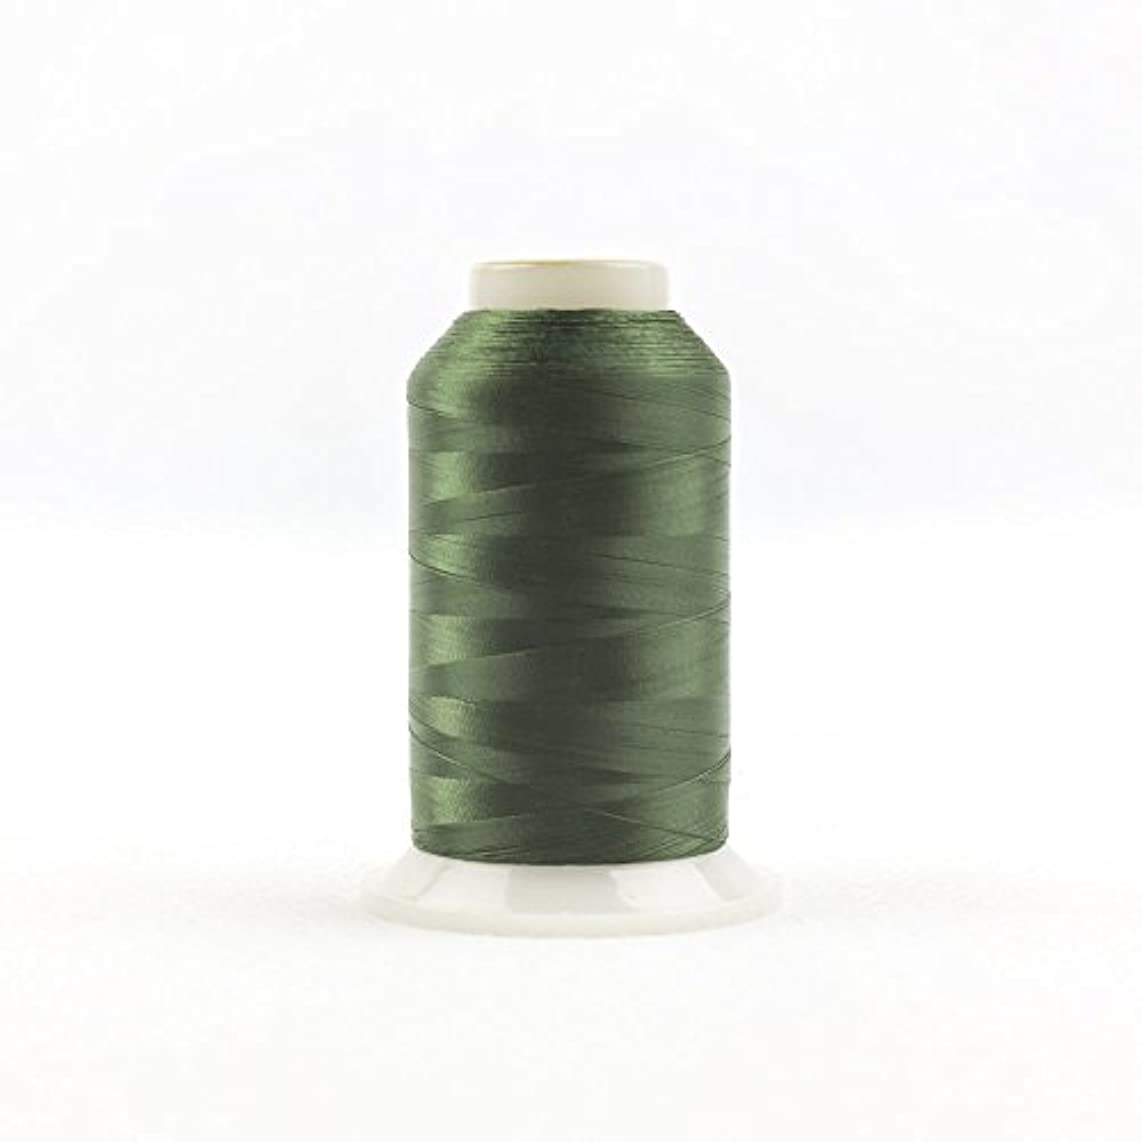 WonderFil, Specialty Threads, InvisaFil, 2-Ply Cottonized Soft Polyester, Silk-Like Thread for Fine Sewing, 100wt - Hunter Green, 2500m